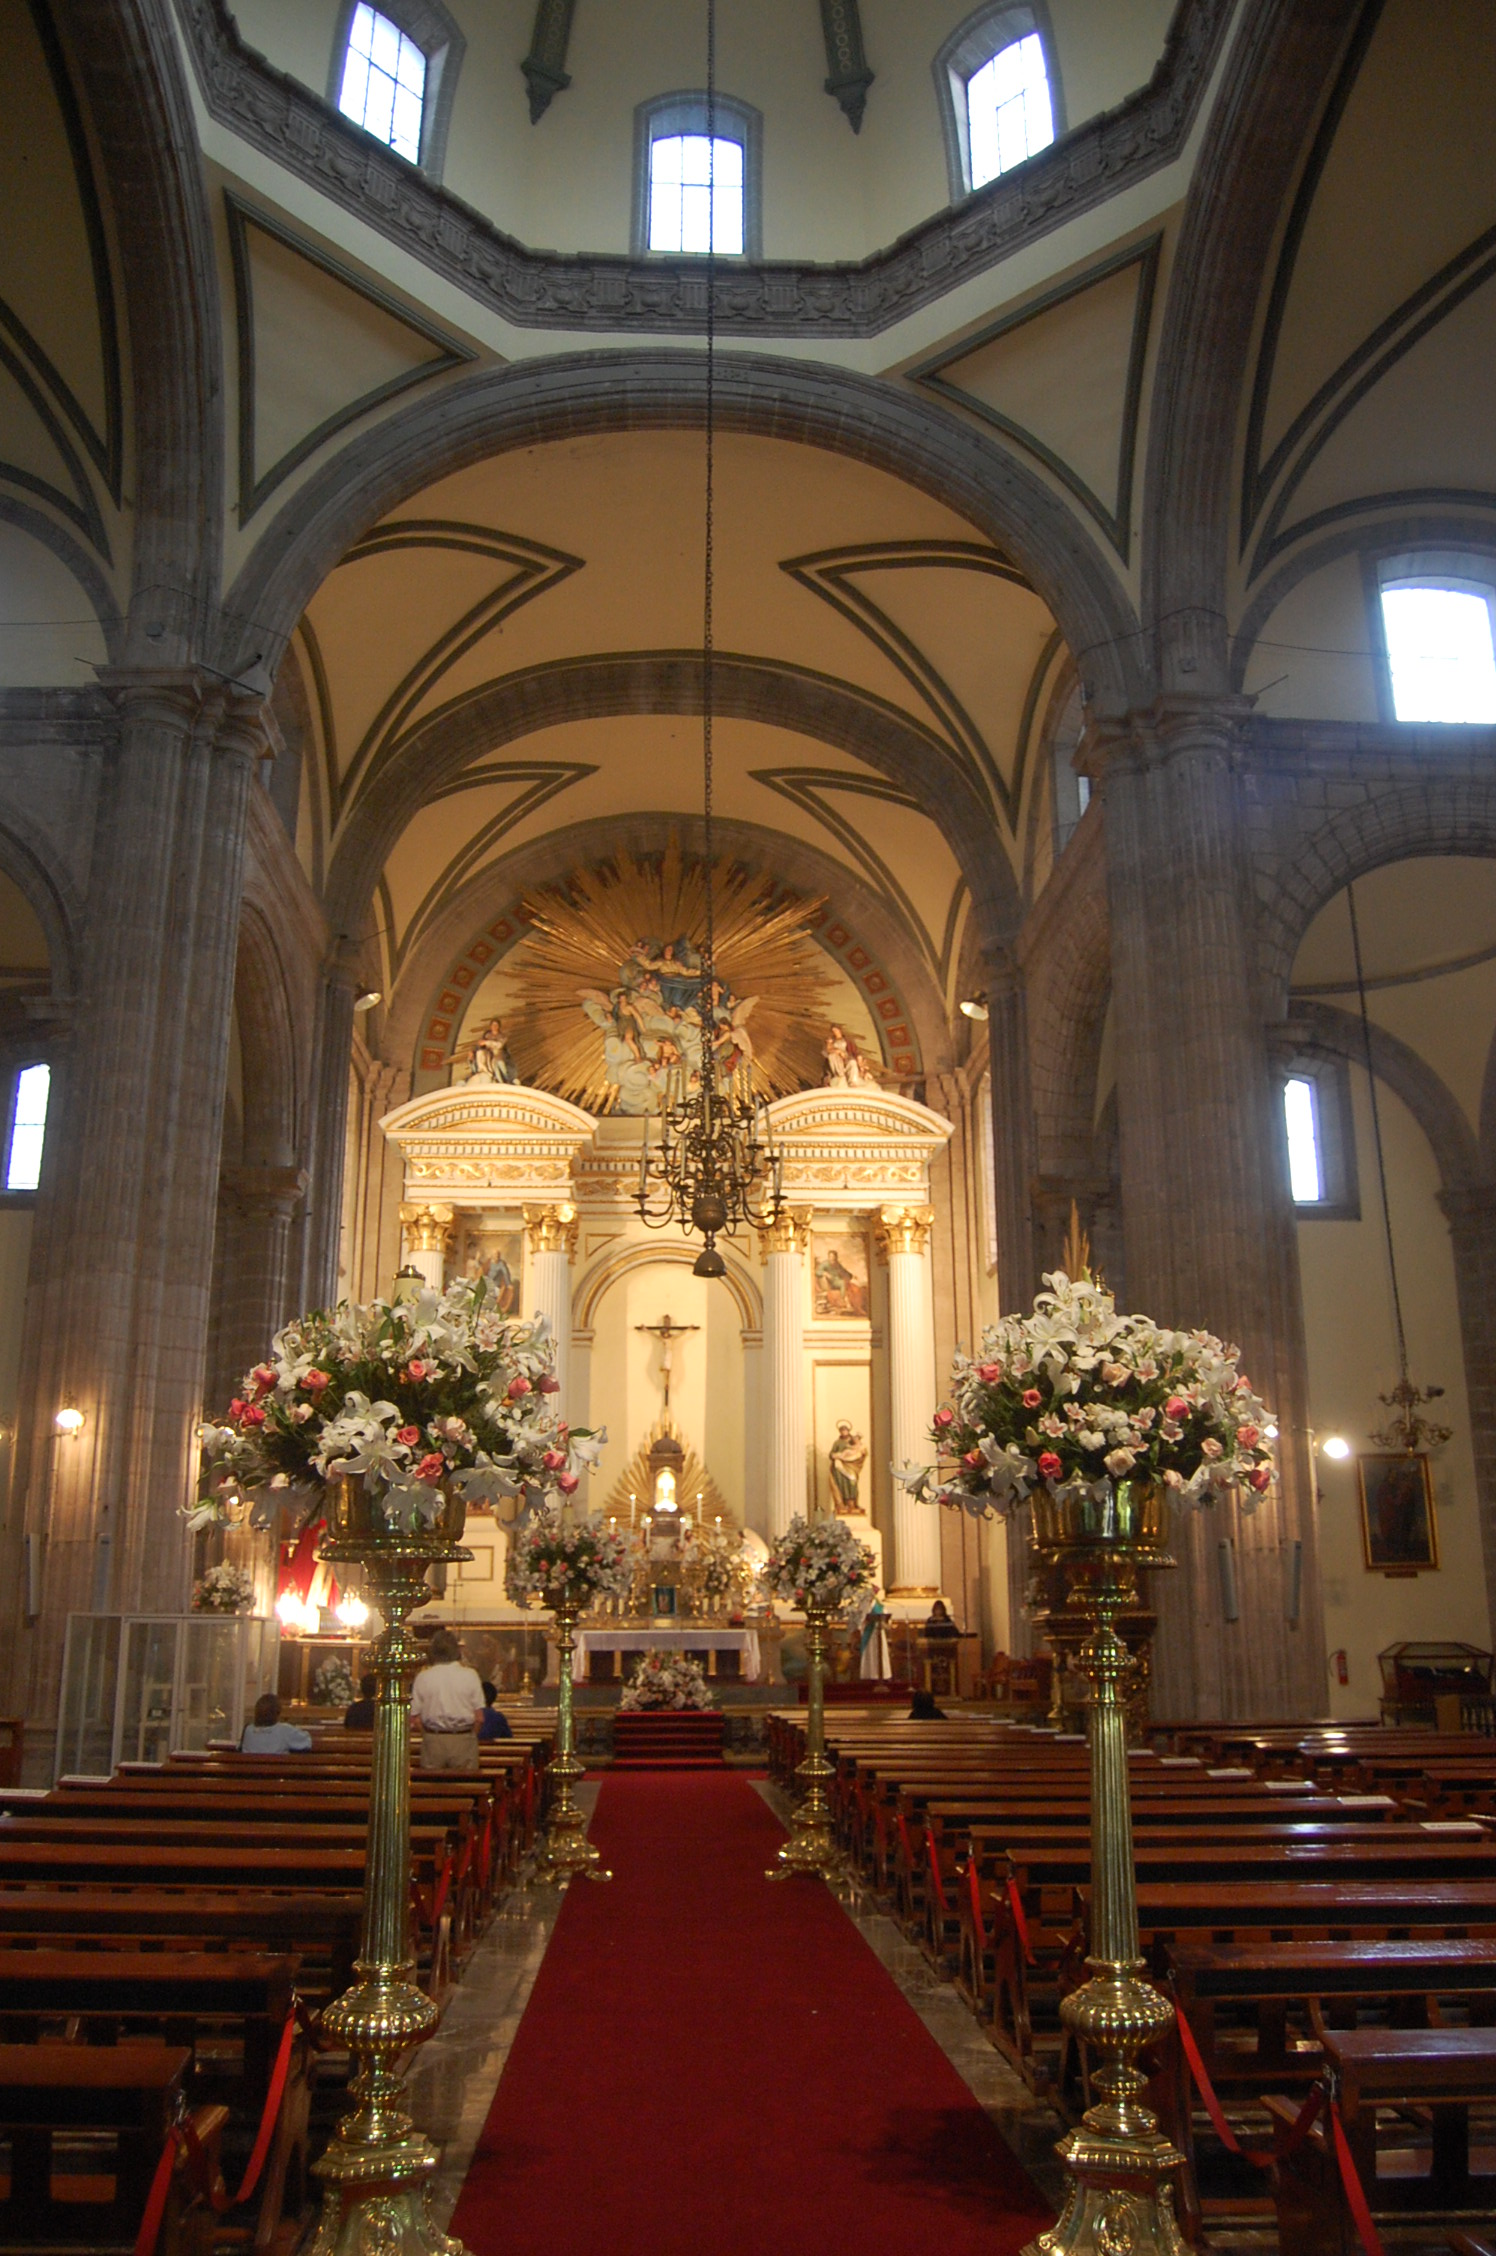 File:Mexico City Metropolitan Cathedral Interior Flowers